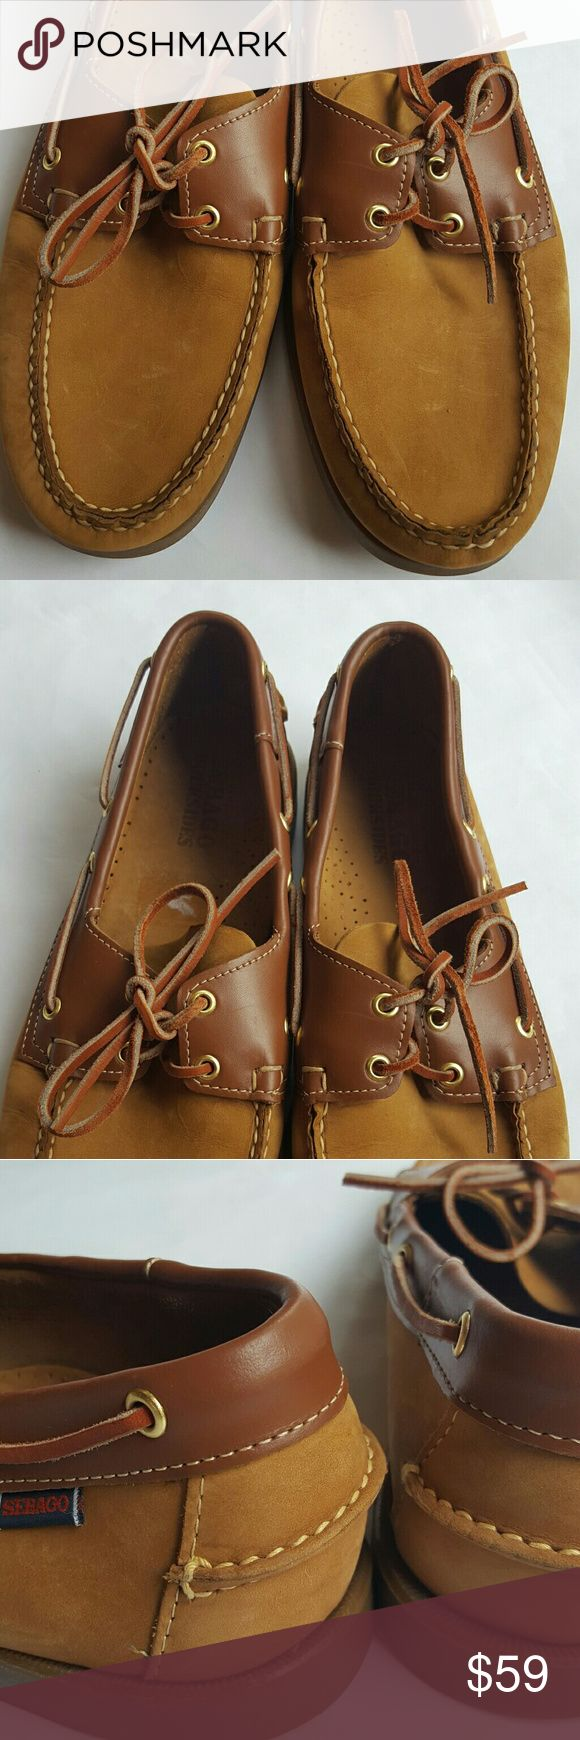 Mens Sebago Docksides Deck /Boat Shoes size 13 Mens Sebago Docksides Deck Shoes size 13. In excellent condition, used once or twice. Brown leather. Sebago Shoes Loafers & Slip-Ons